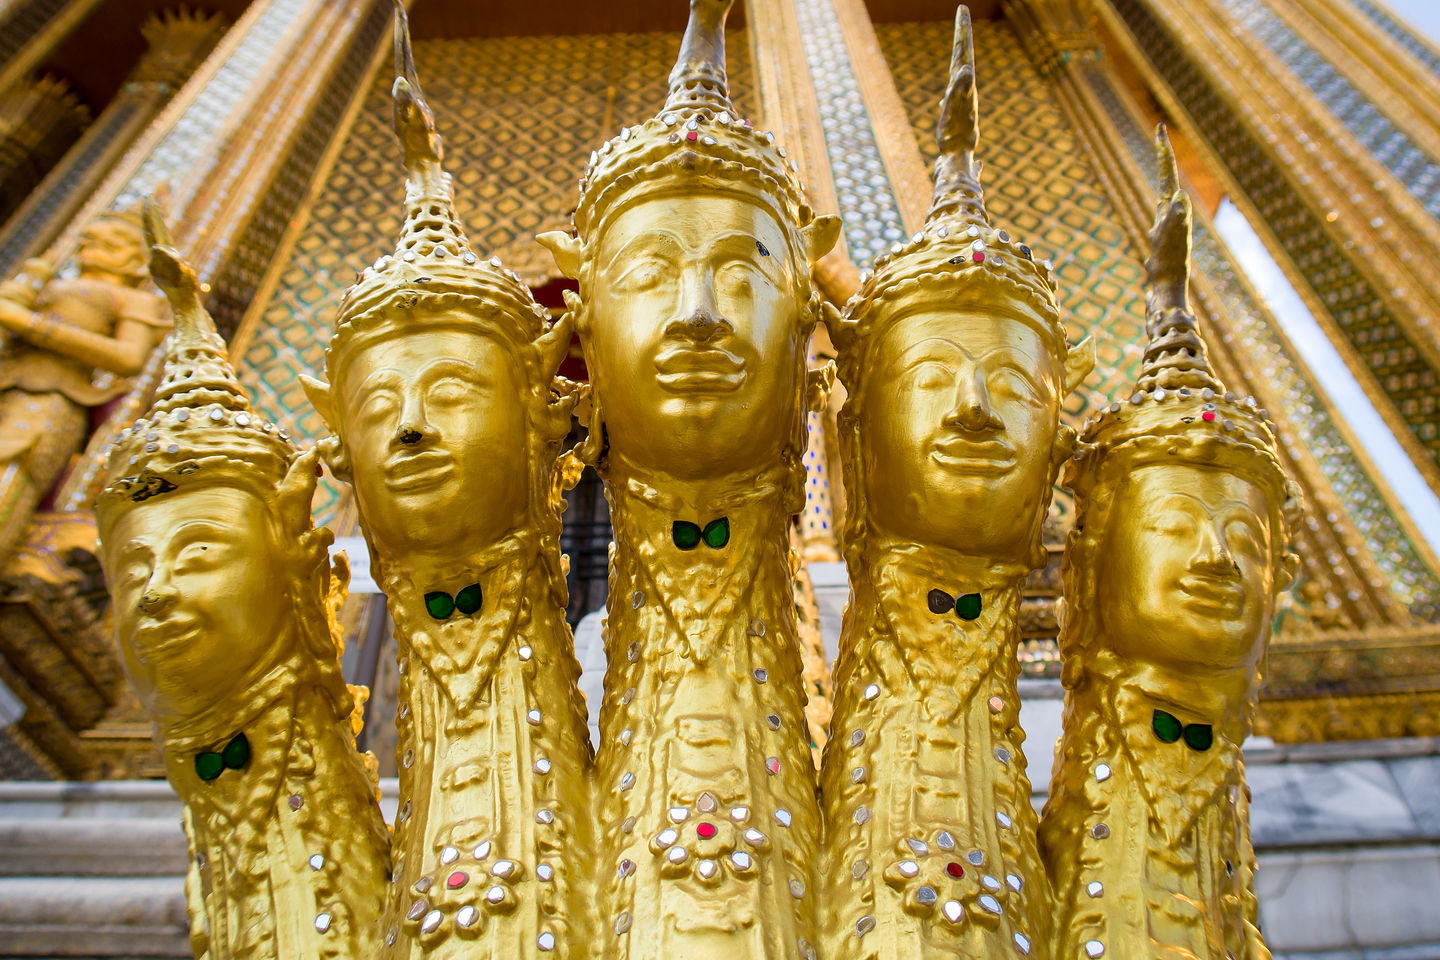 5-headed nagas of Wat Phra Kaew